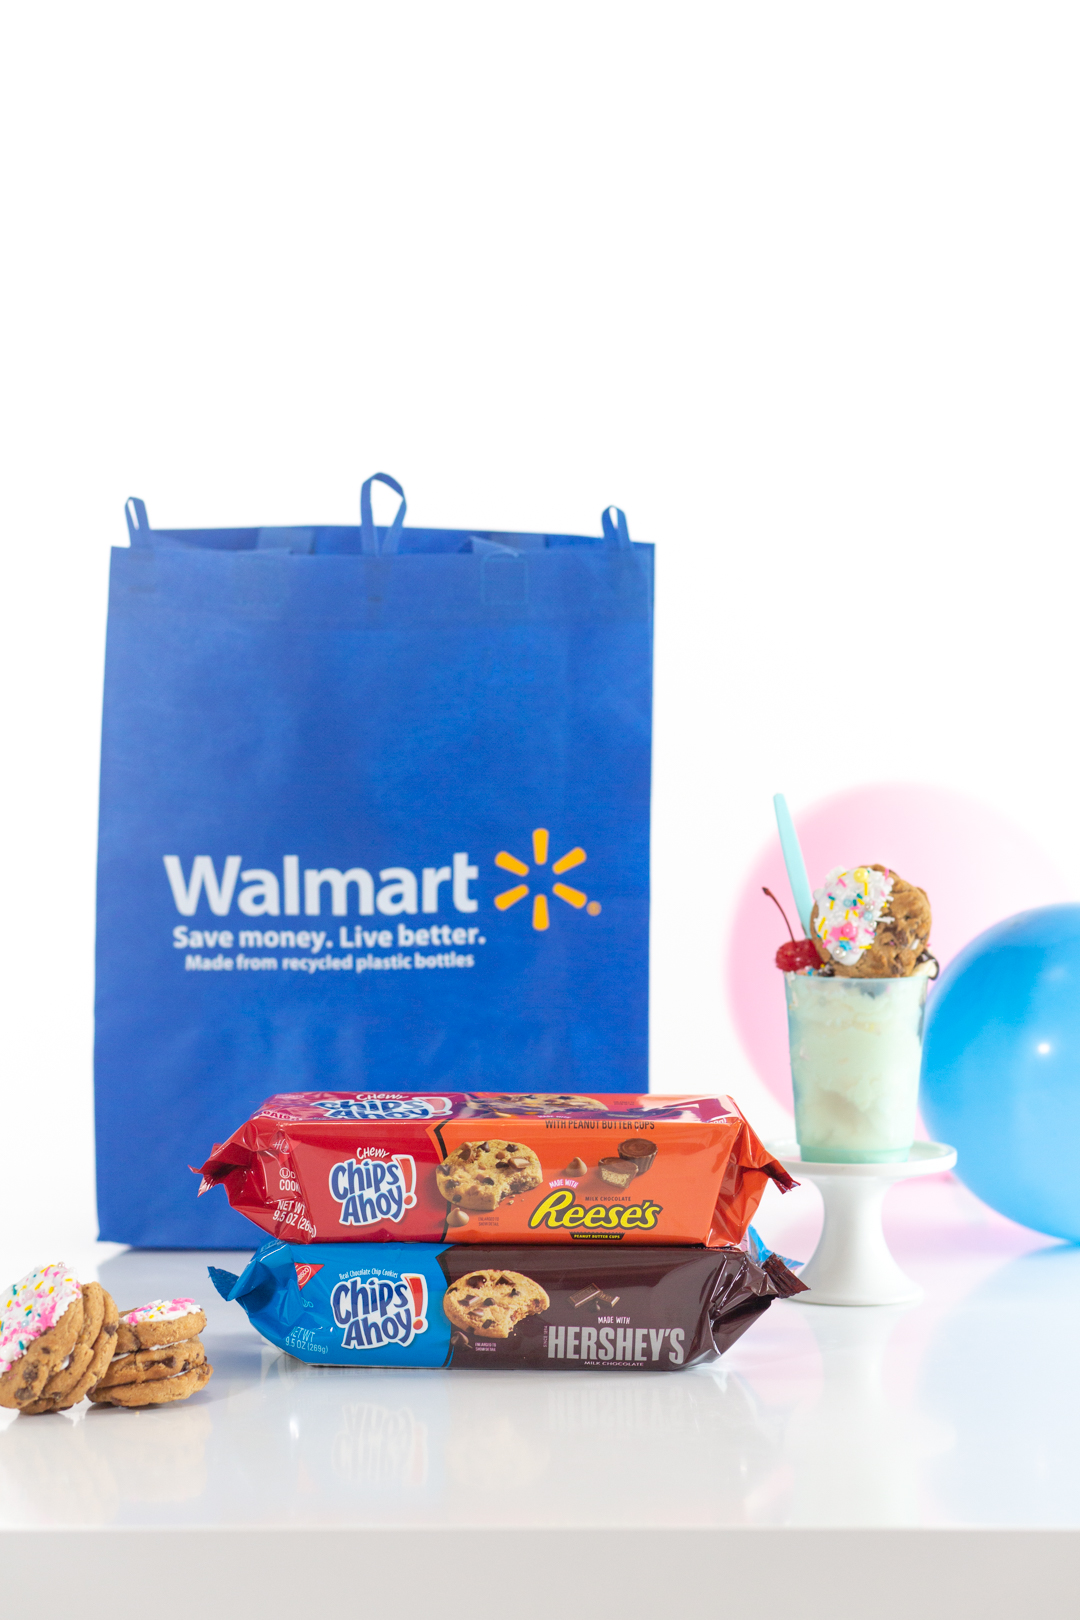 walmart shopping bag and chips ahoy cookies with Hershey